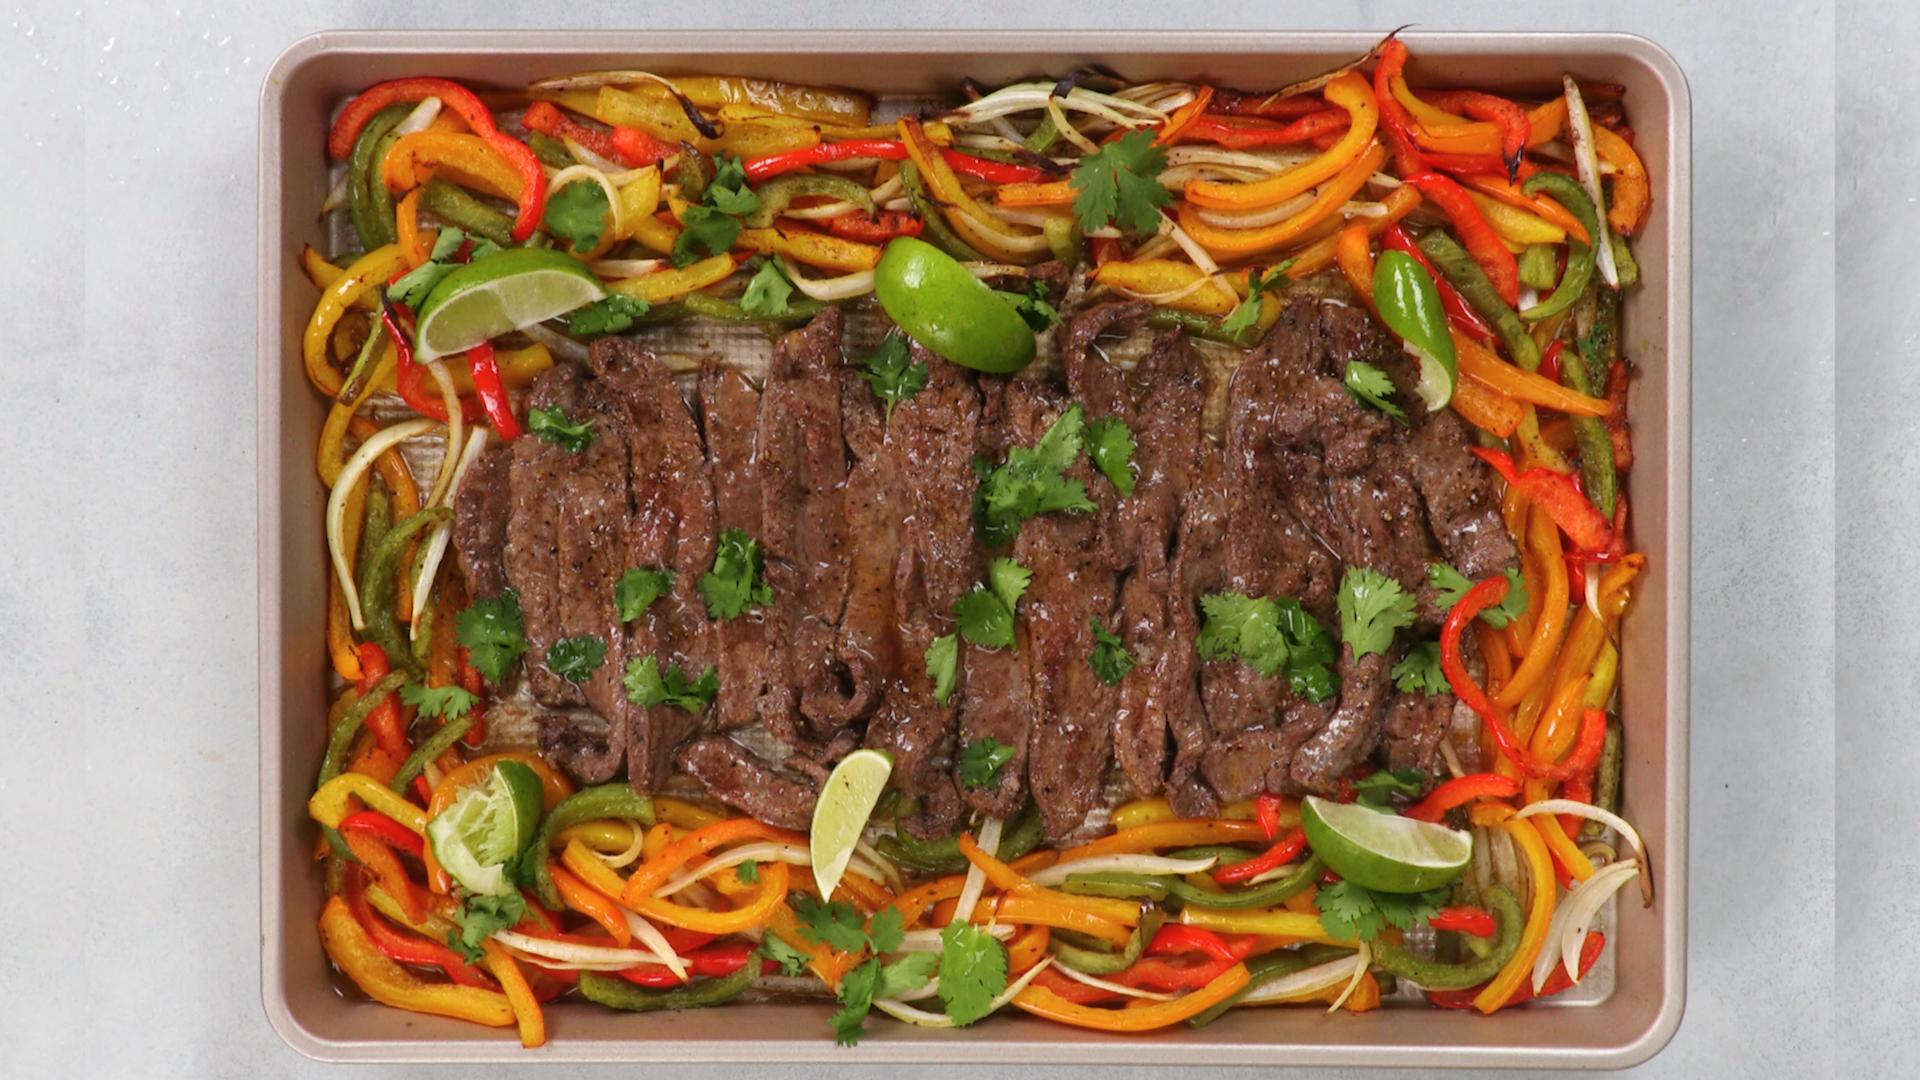 Sheet Pan Steak With Blistered Veggies